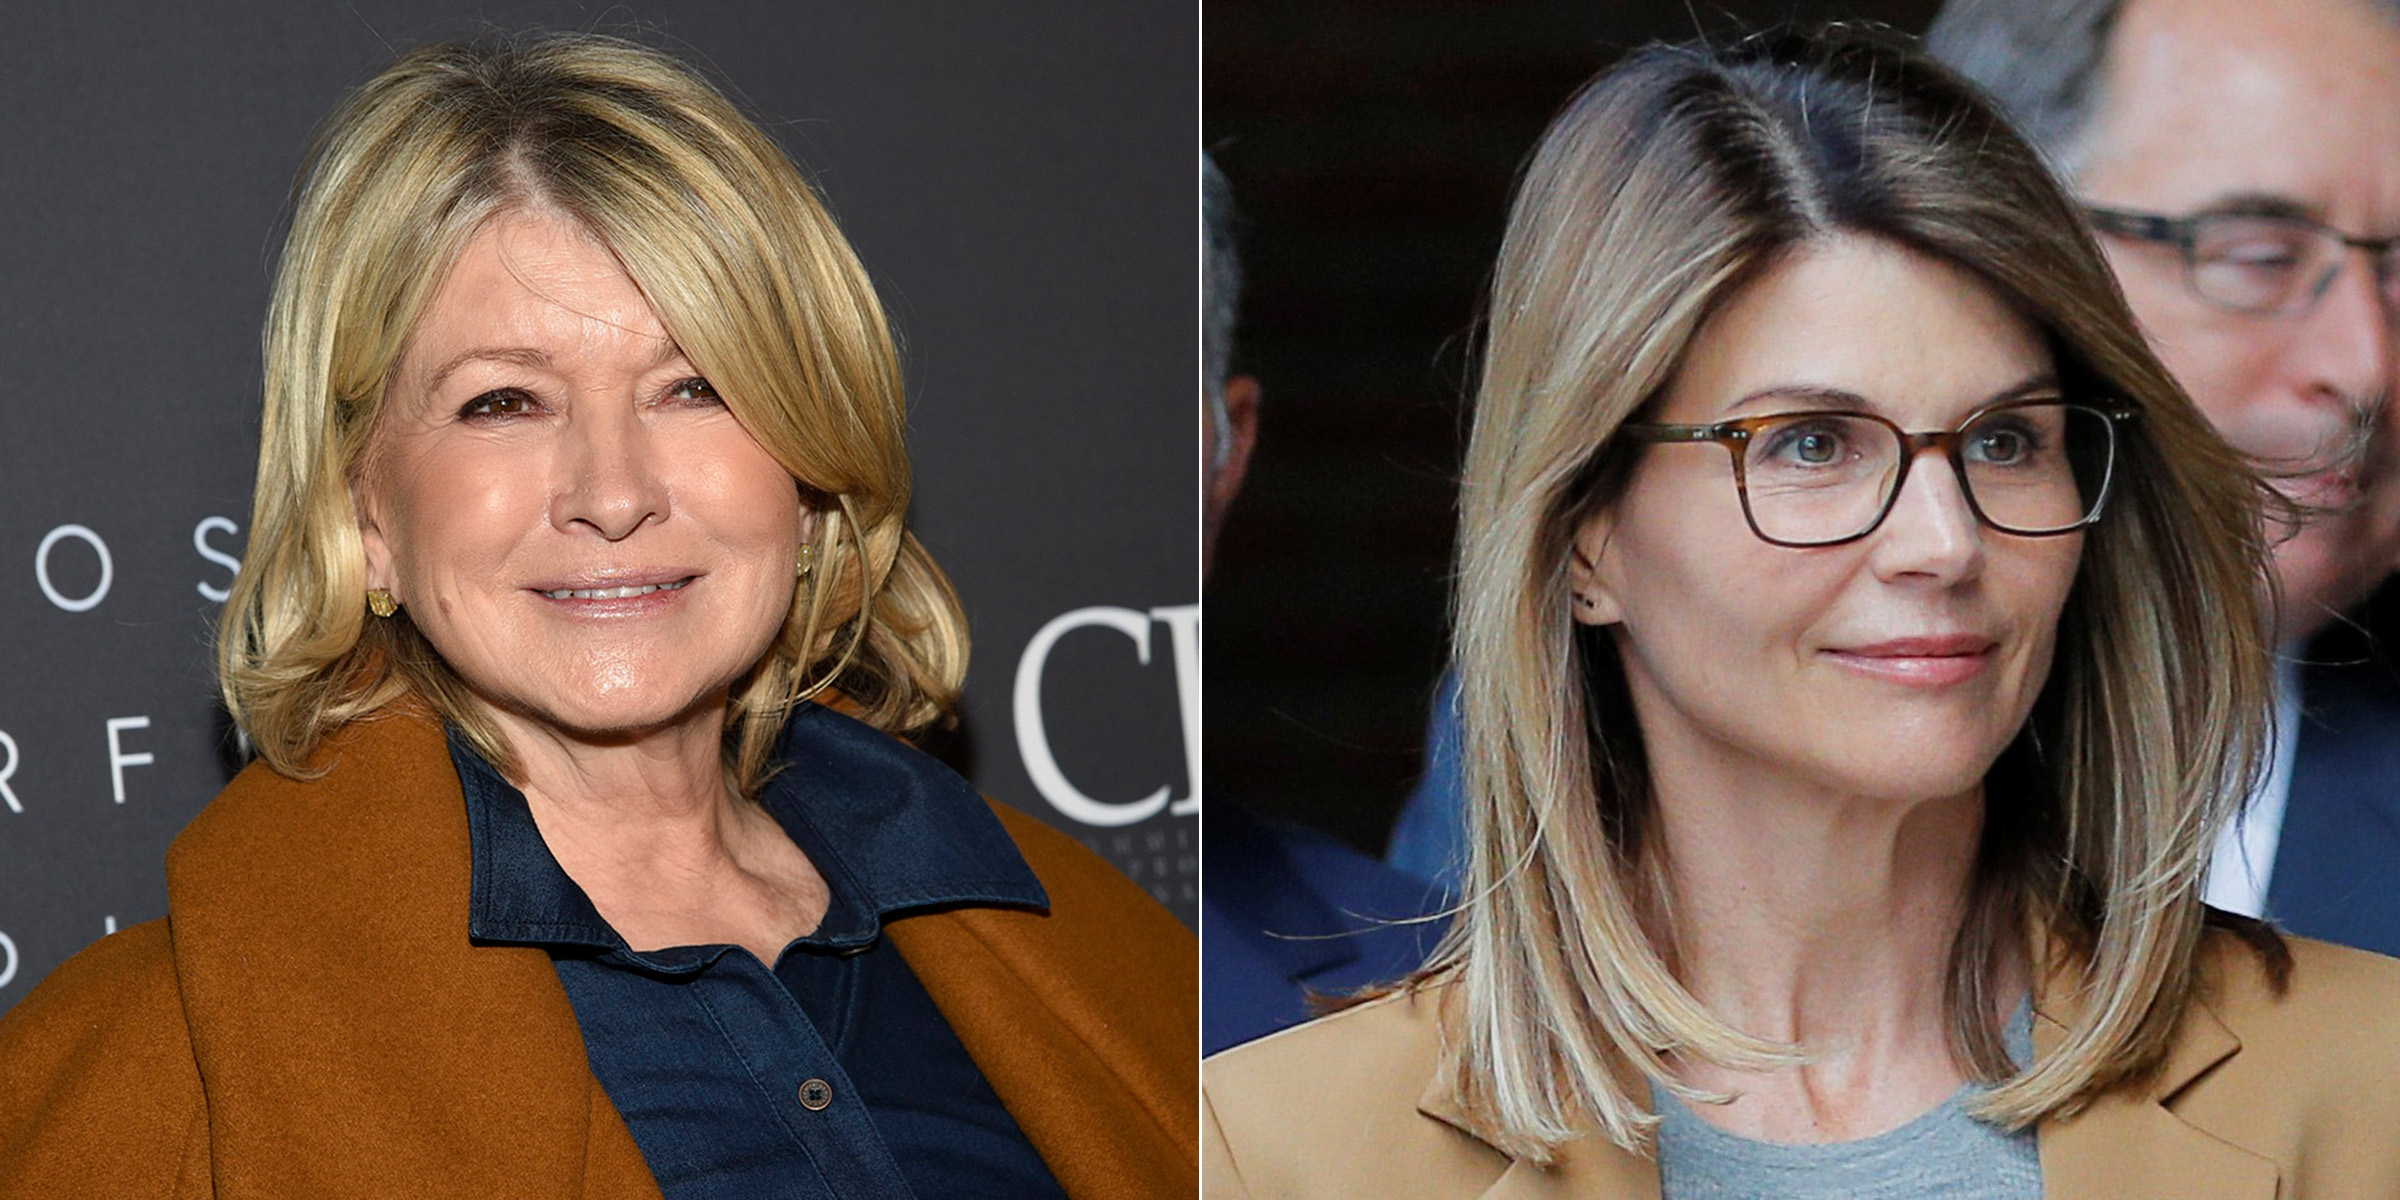 Martha Stewart 'feels sorry' for Lori Loughlin, Felicity Huffman college scandal troubles